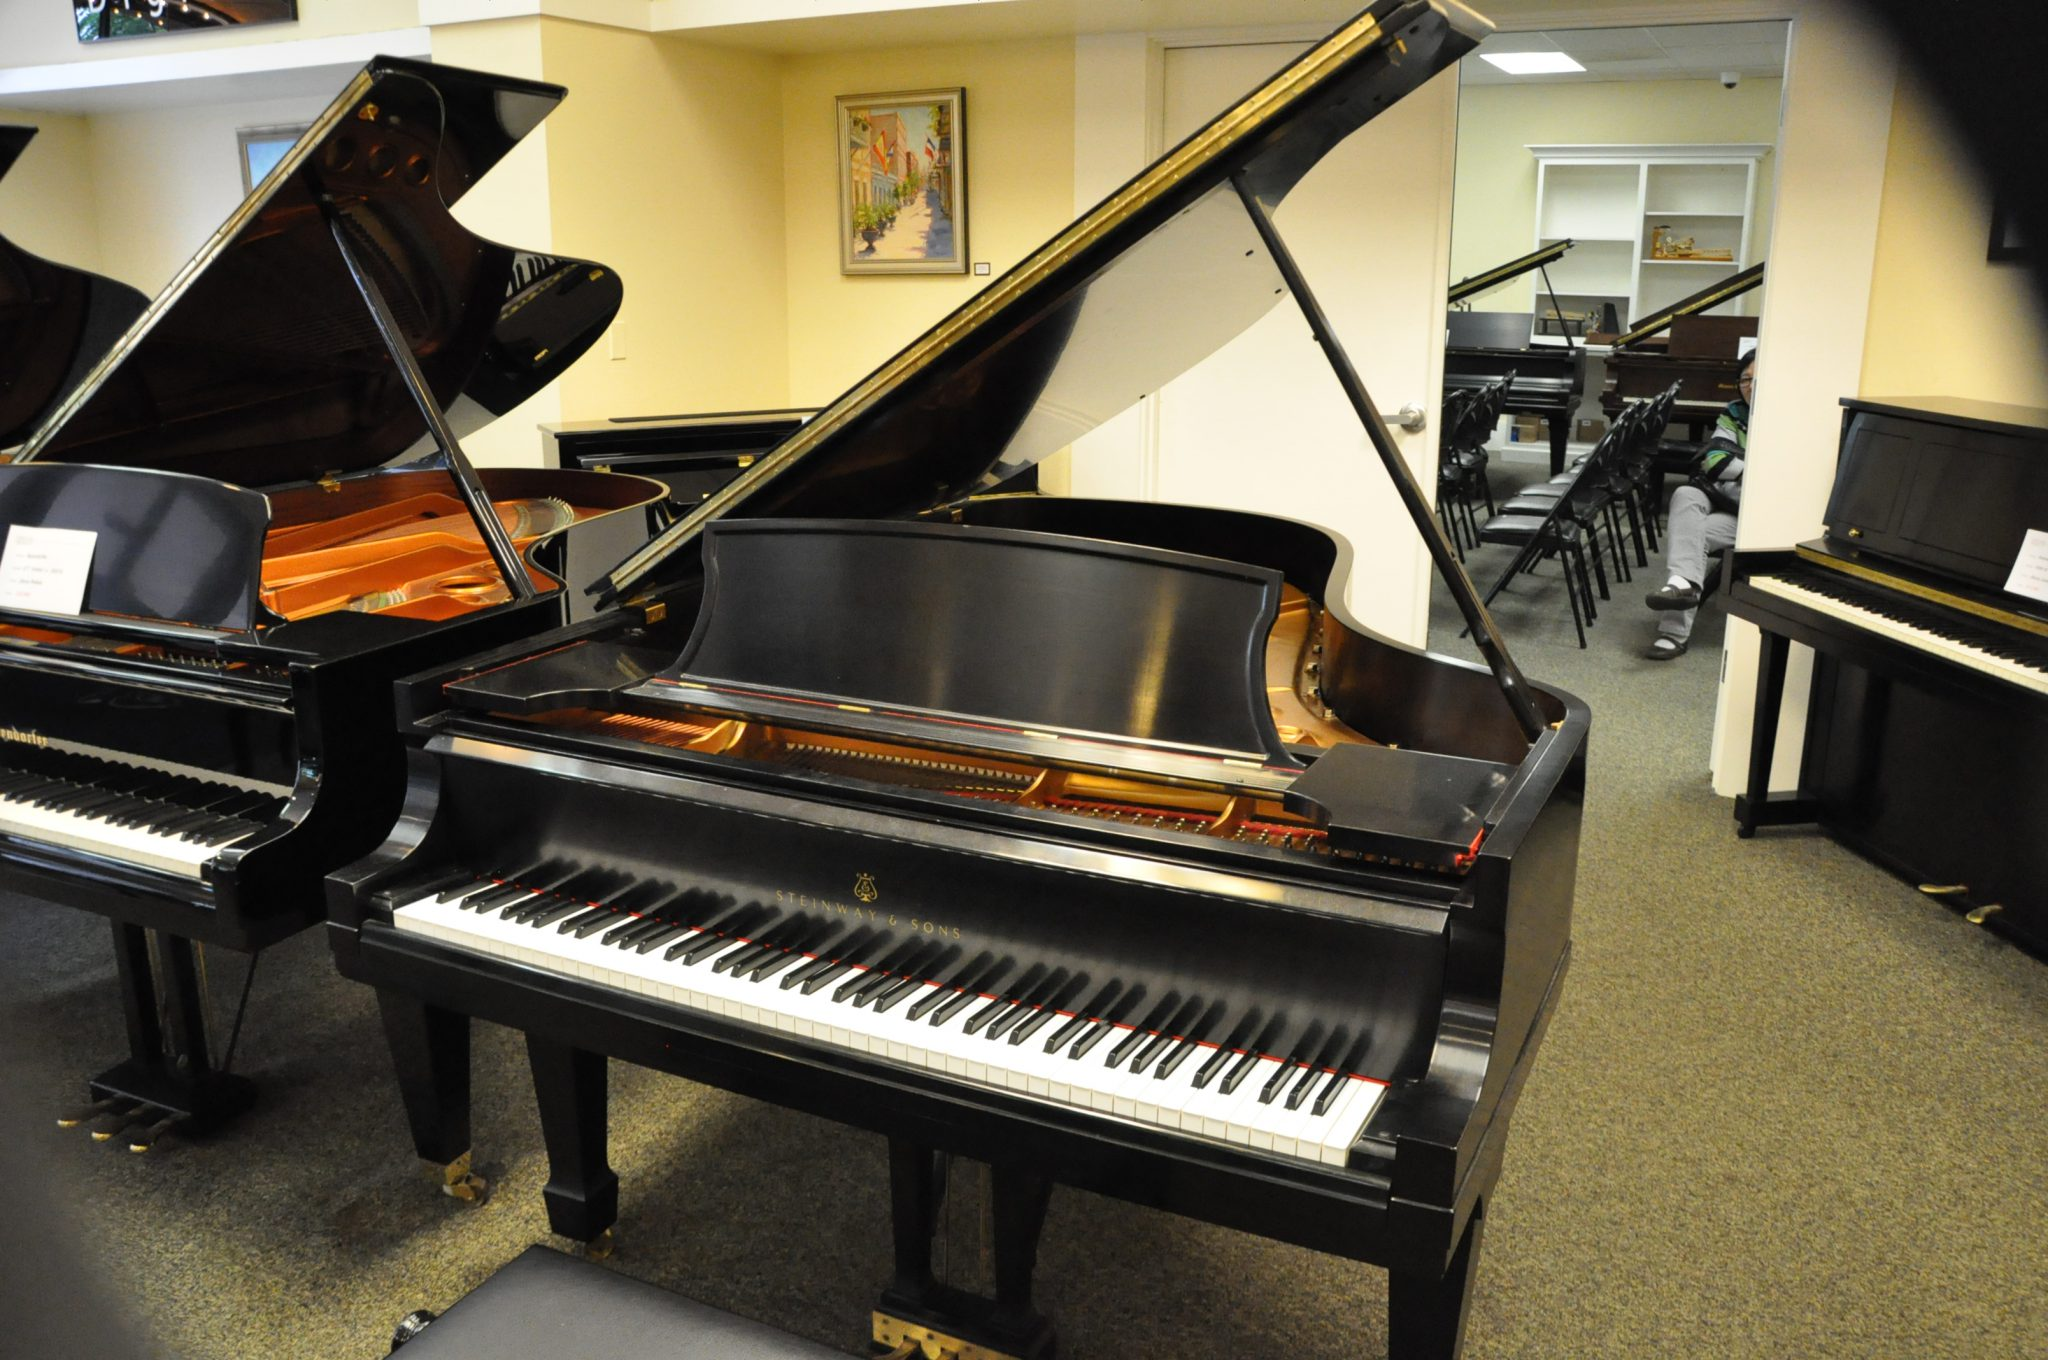 steinway and sons strategic orientation View eric feidner's profile well as education and ensure a competitive and relevant orientation in the general the steinway & sons record label is another.